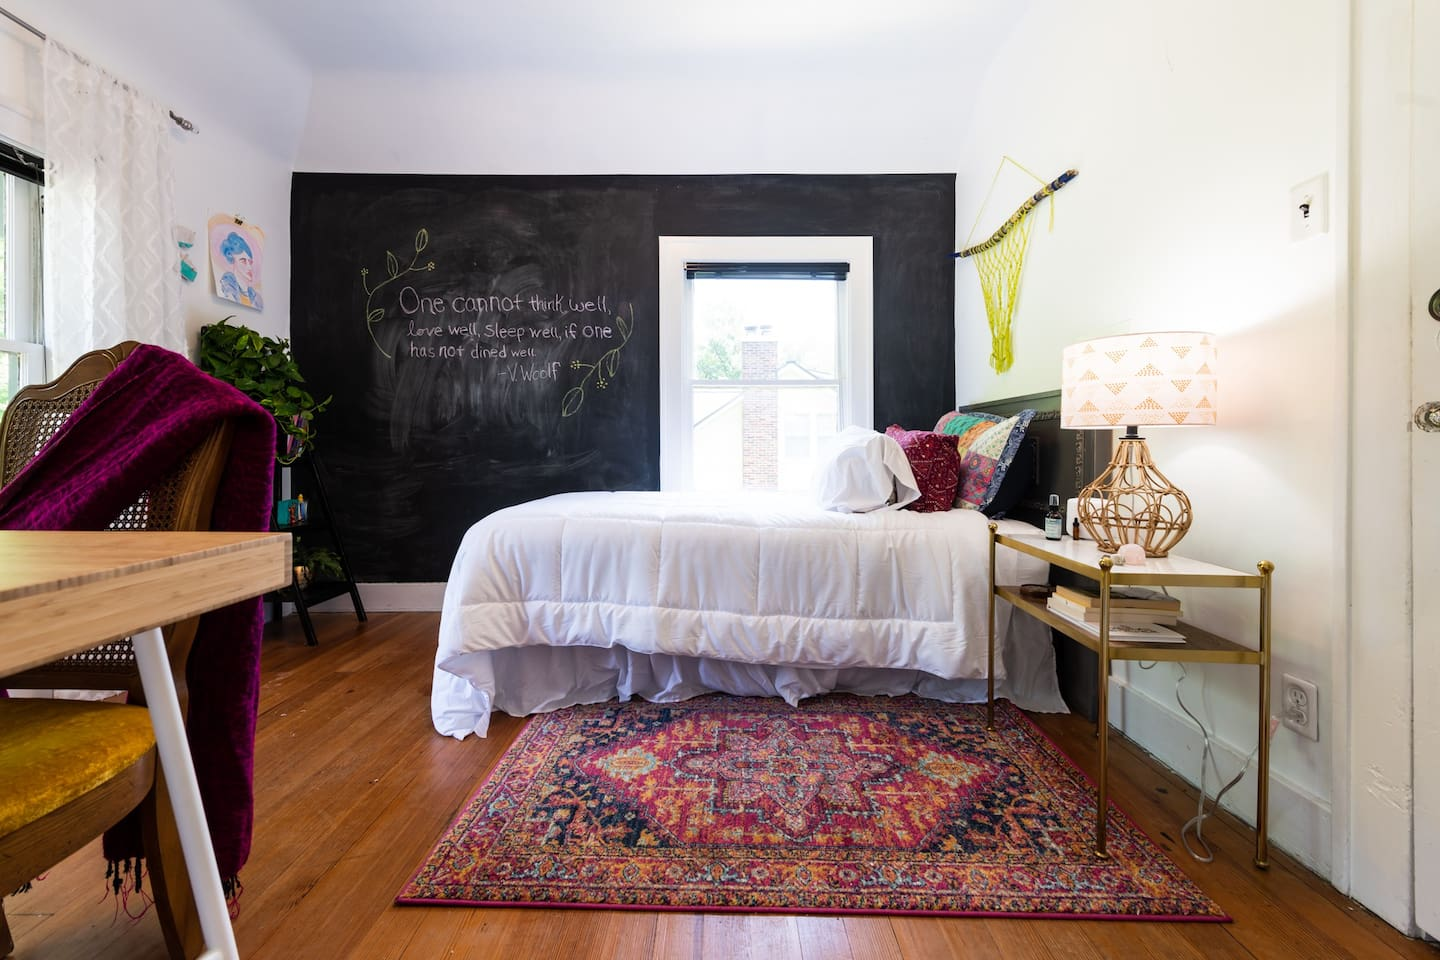 Room of One's Own. Sleeps 1 in a twin bed. Perfect for a solo traveler who is looking for a creative retreat or a home base for adventures. Features the best light in the house with two east facing windows.